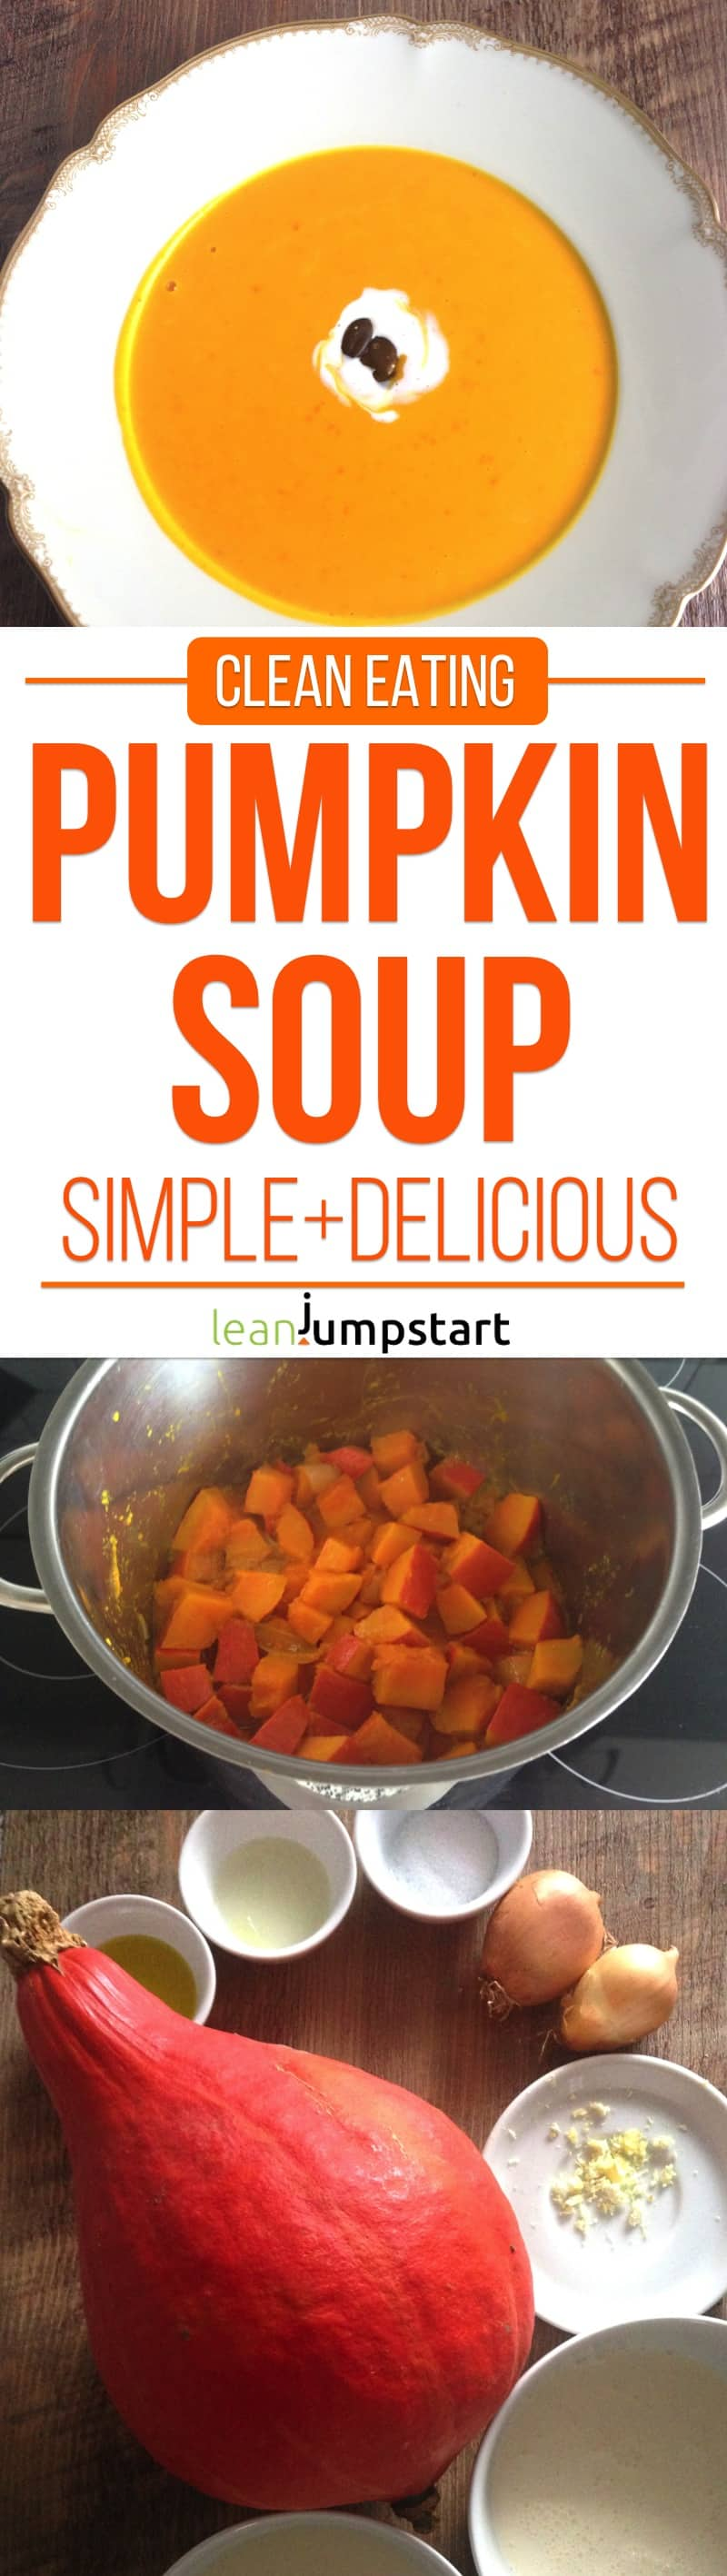 red kuri squash soup recipe: a simple clean eating meal with hokkaido pumpkins. Click through!